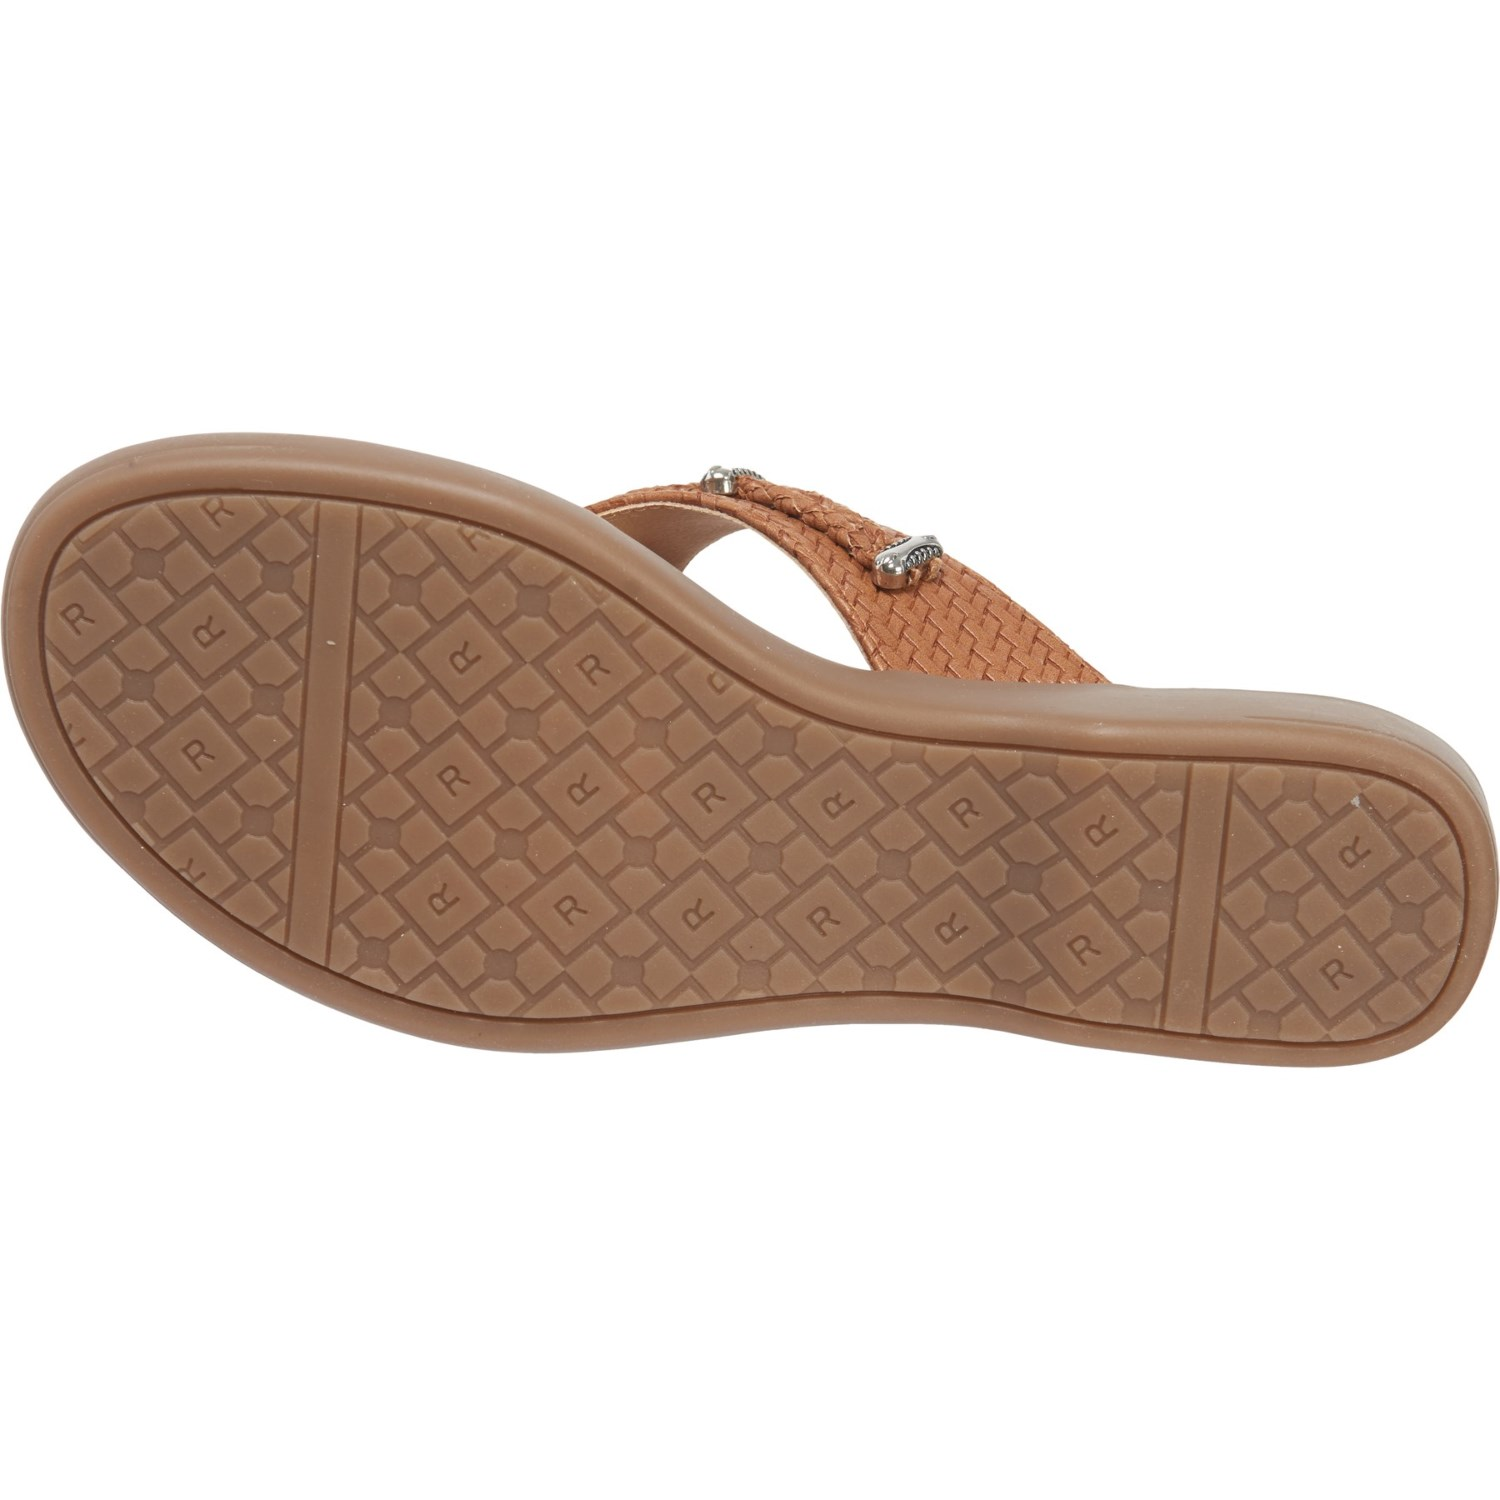 e4fd7b12070f Rialto Bailee Sandals (For Women) - Save 20%